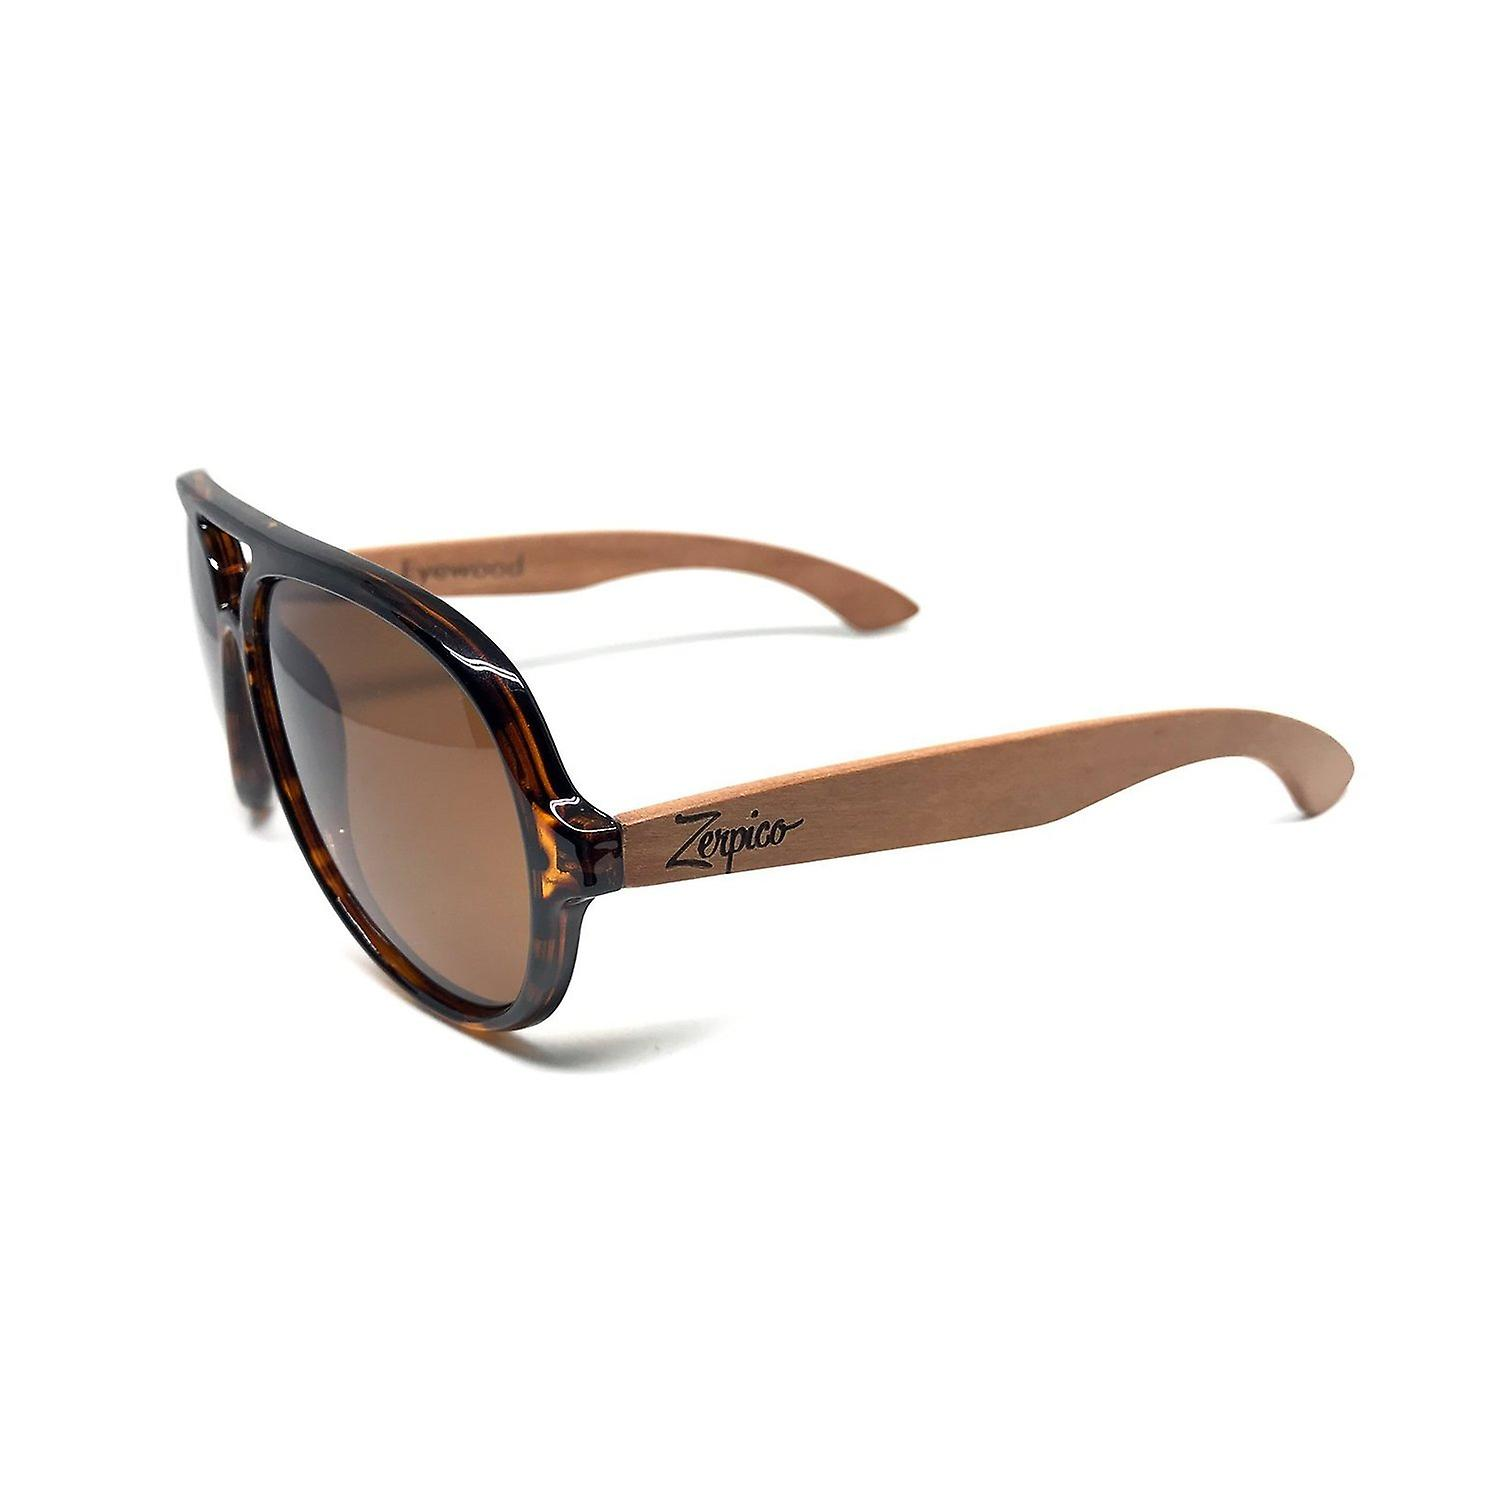 Eyewood Sunglasses - Aviators - Dakota